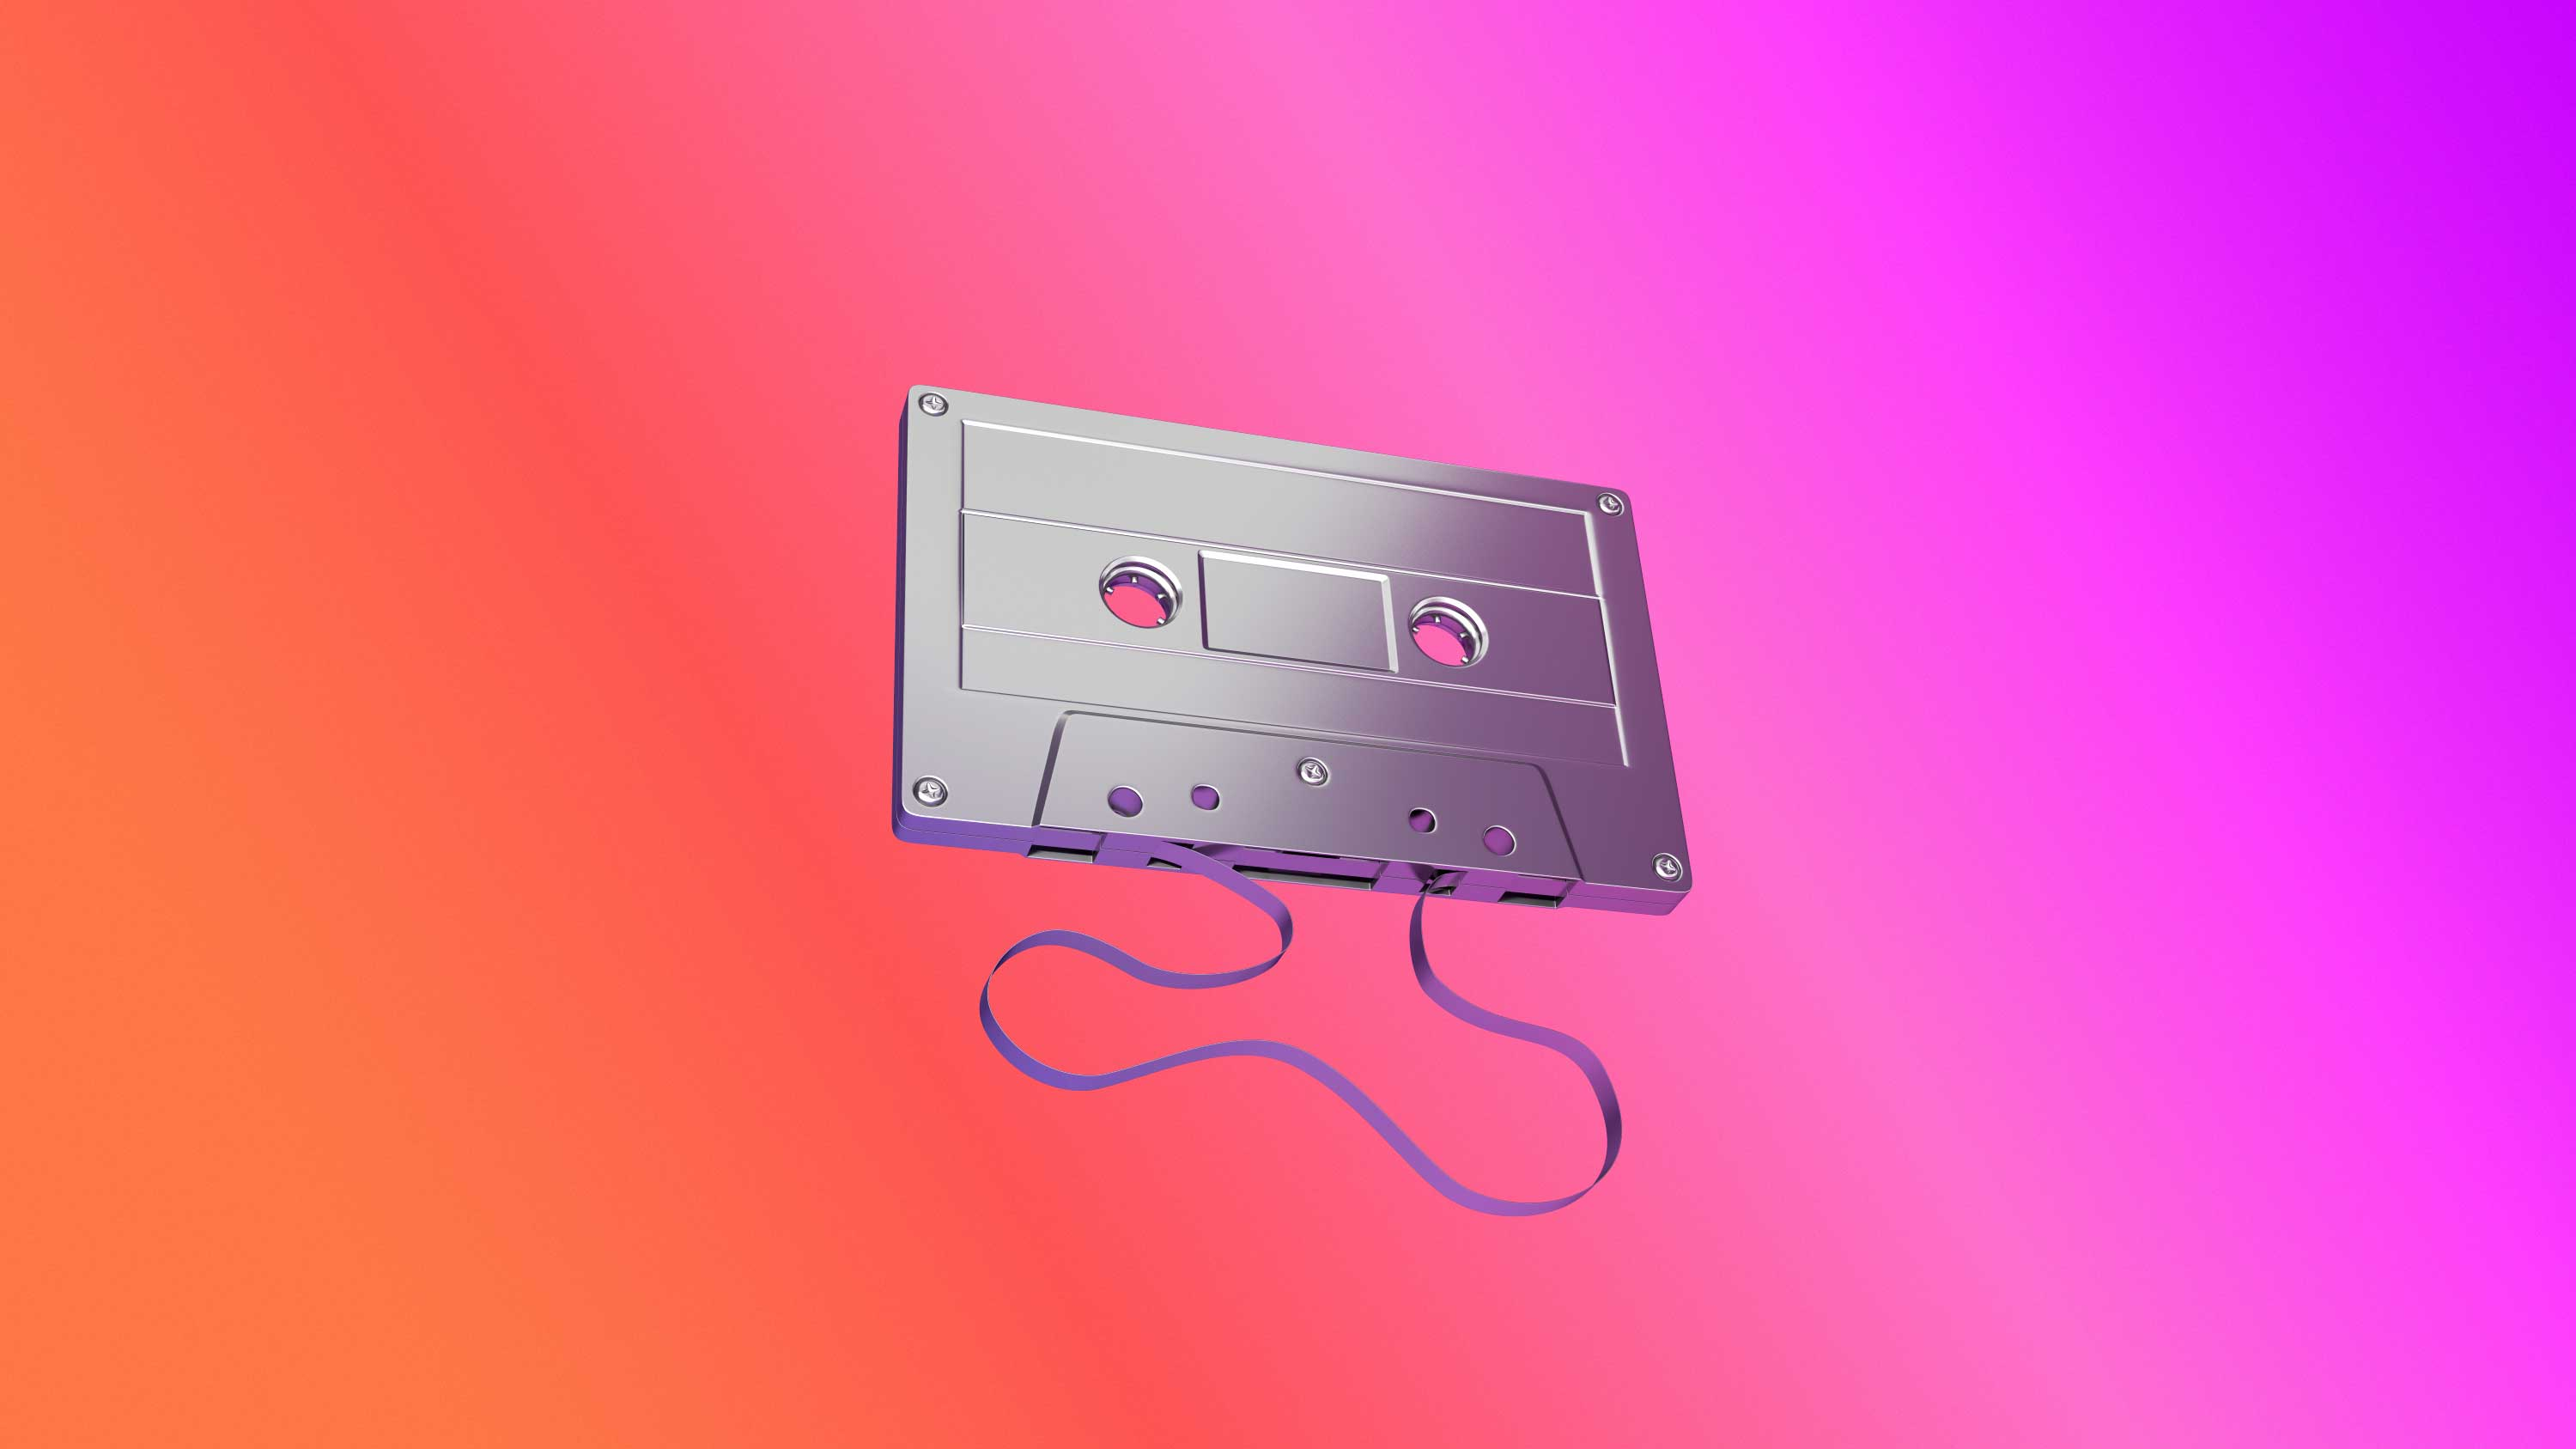 cgi-product-3D-grayscaled-cassette-with-loose-tape-on-translucent-orange,-red-and-purple-coloring-Nico Castro